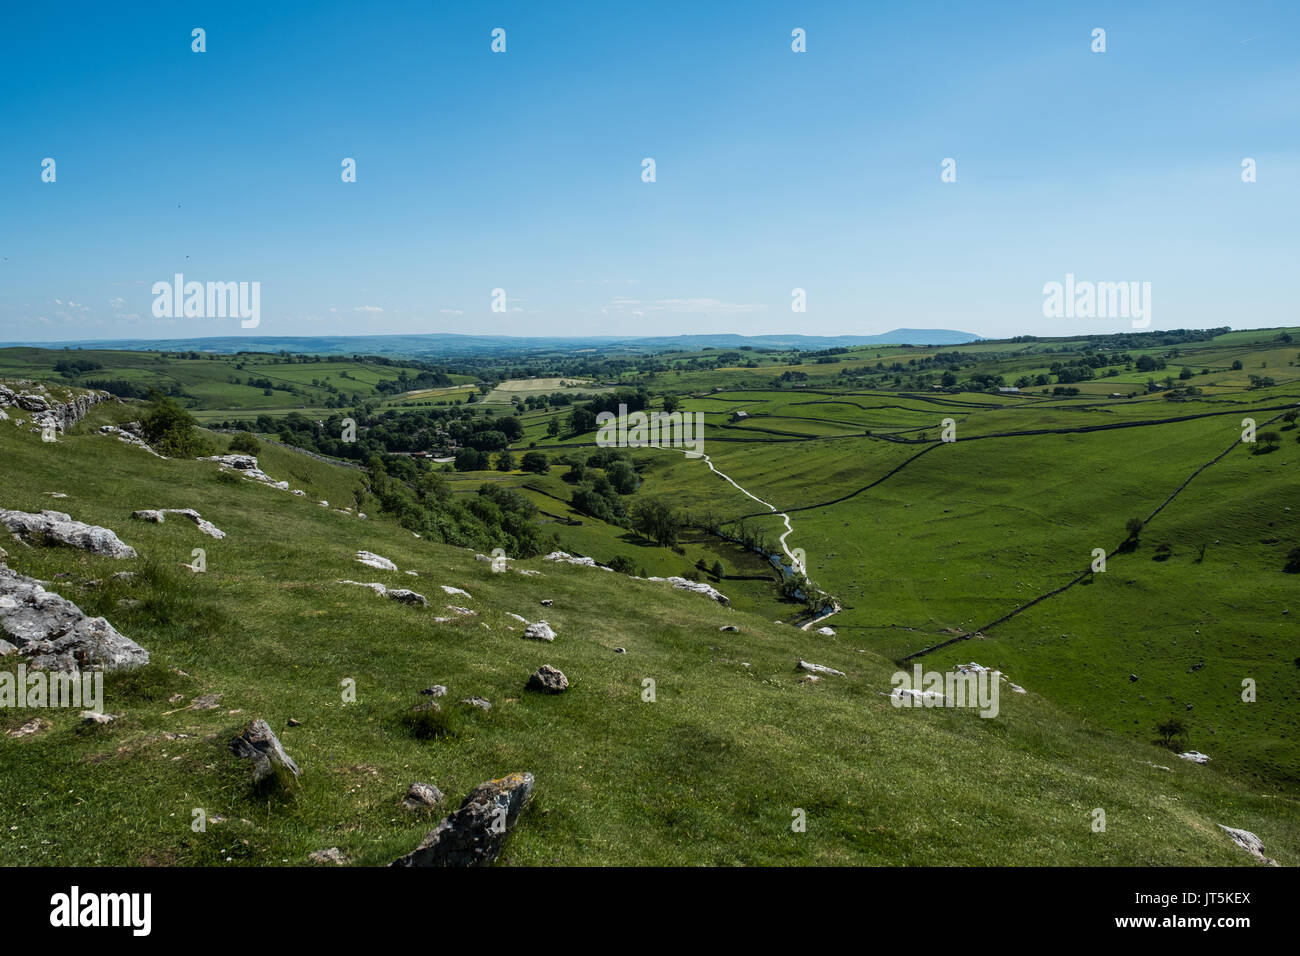 Views of the Landscape Around Malham, Yorkshire Dales, UK. - Stock Image